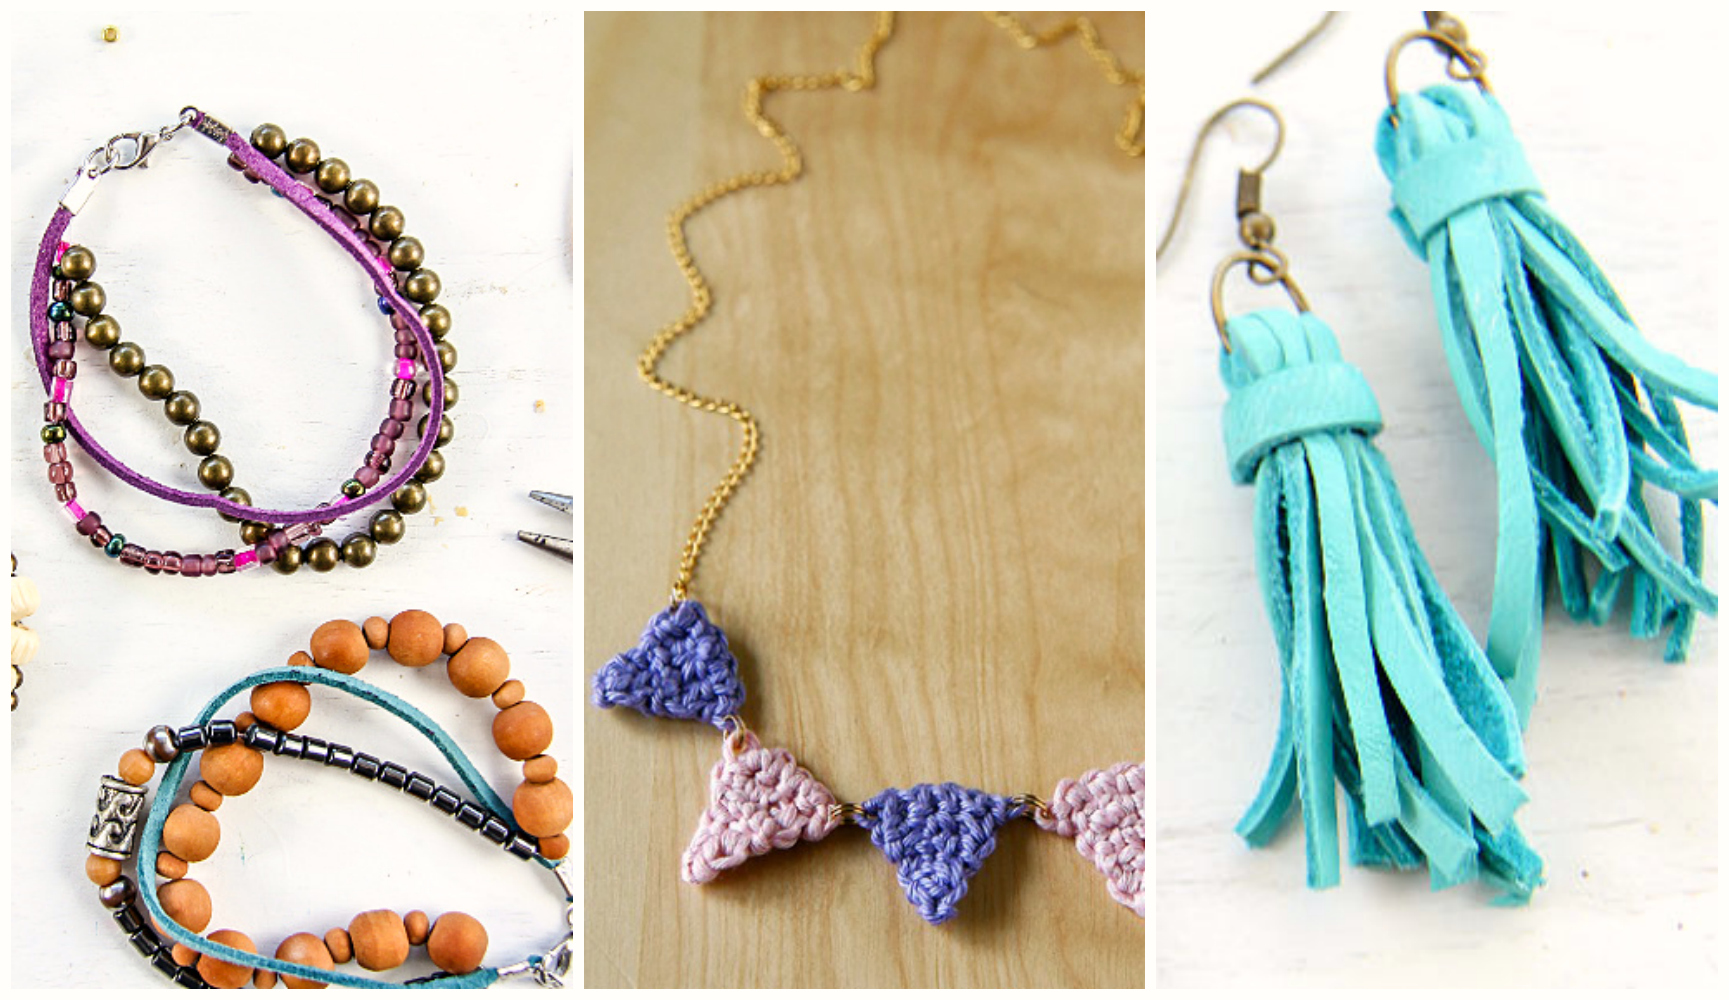 9 DIY Jewelry Gifts to Make for Holiday Giving